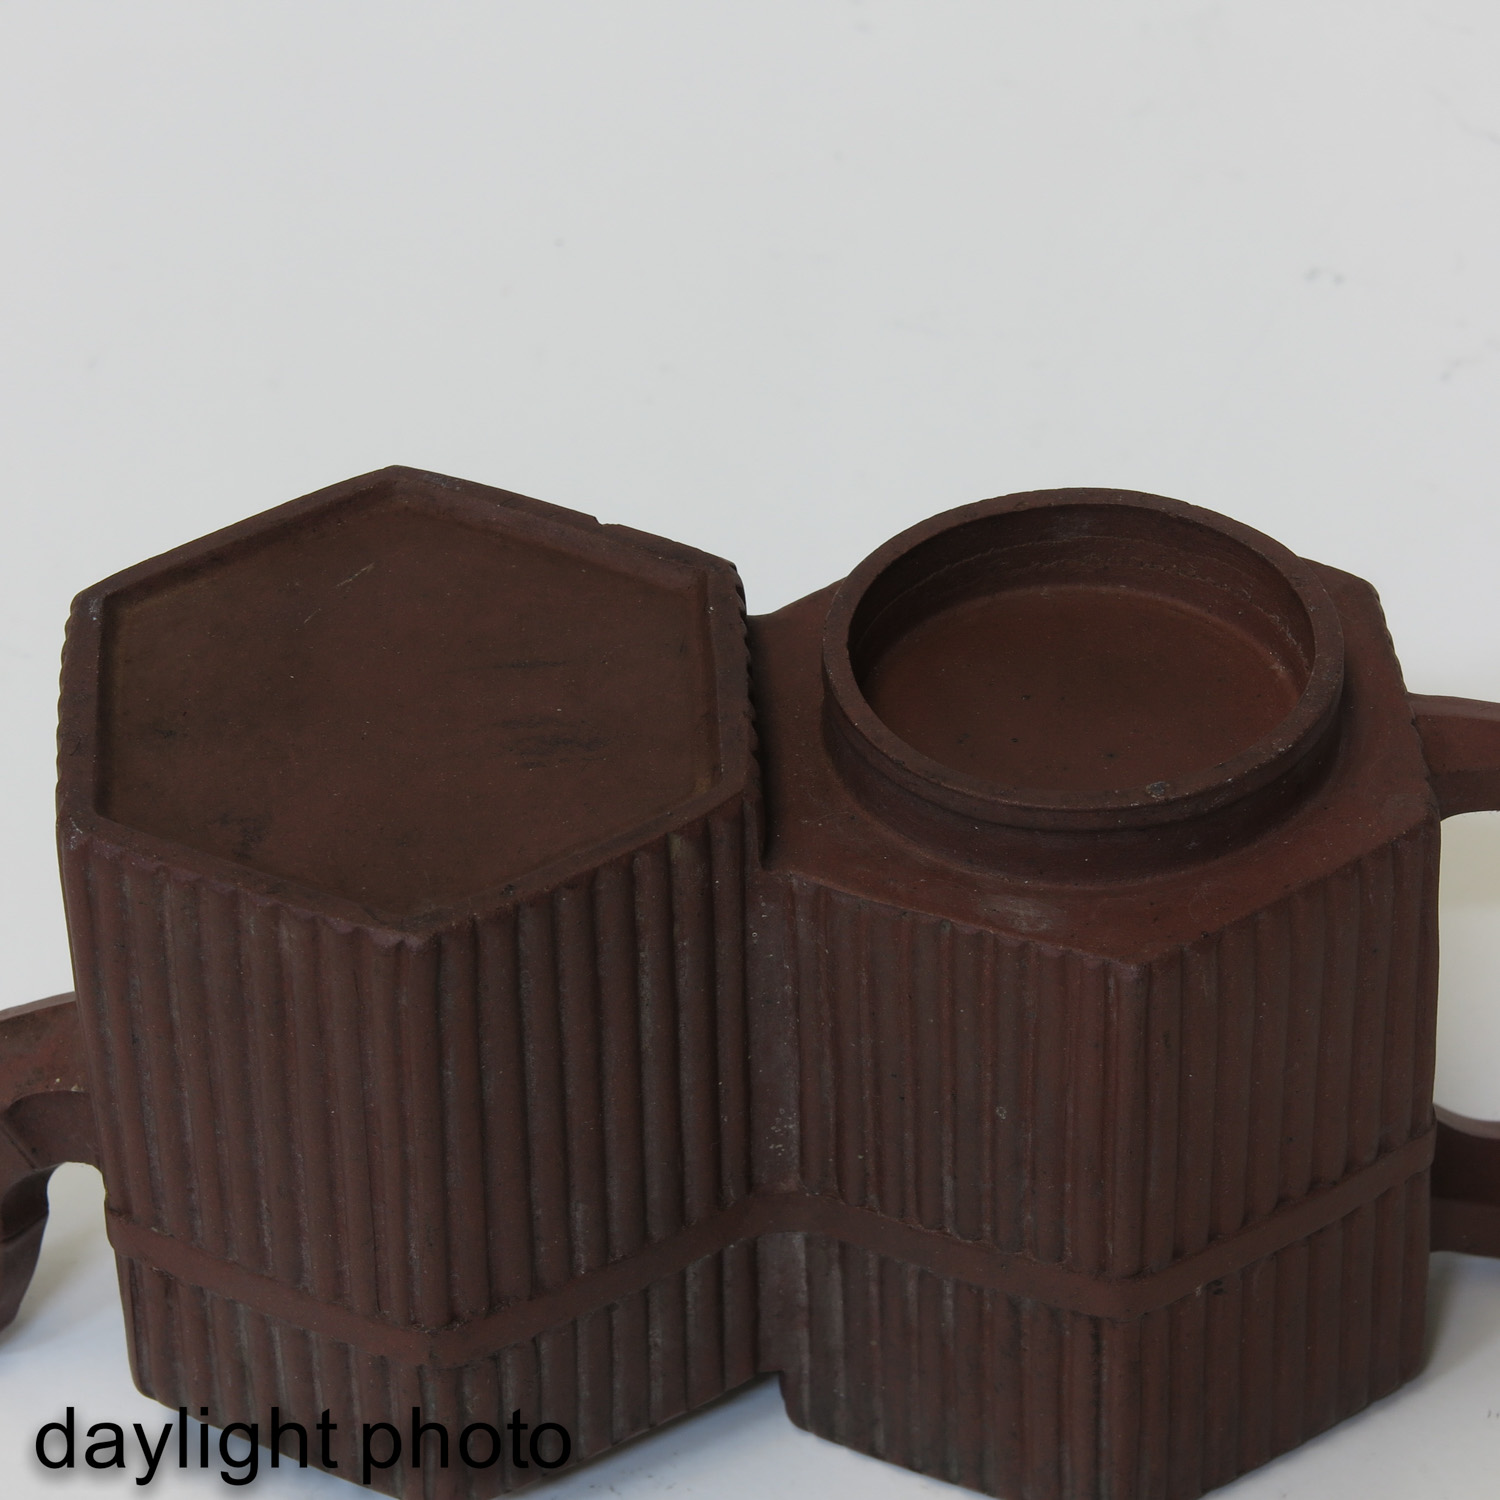 A Double Yixing Teapot - Image 8 of 9